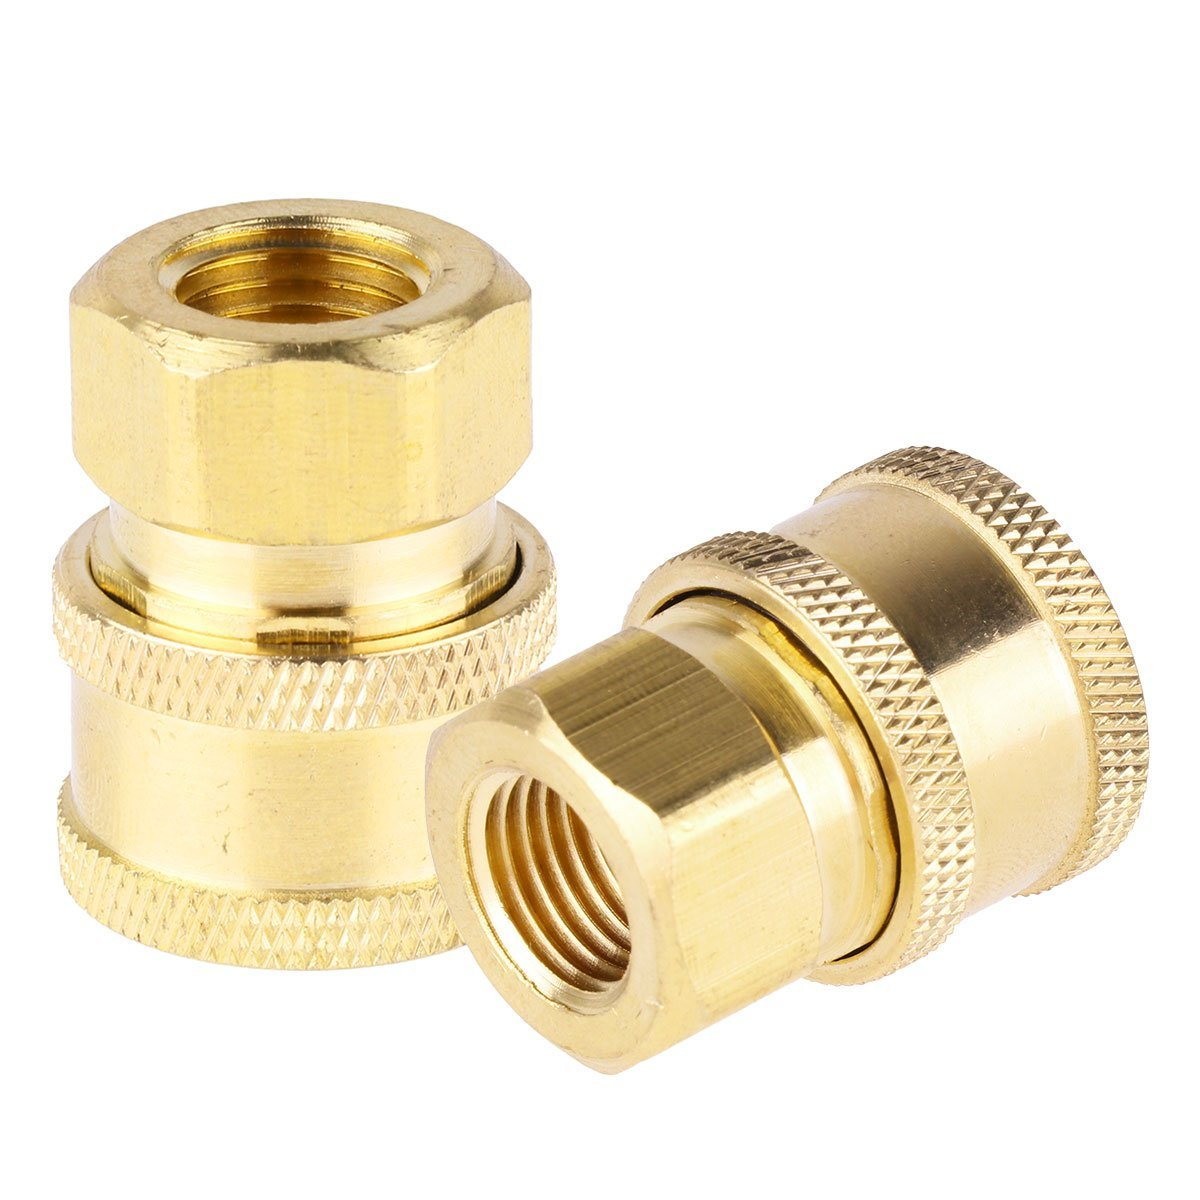 CHICTRY 2 Pack Pressure Washer Accessories Brass Quick 1/4 Inch Female NPT Coupler Fittings Max 5000 PSI